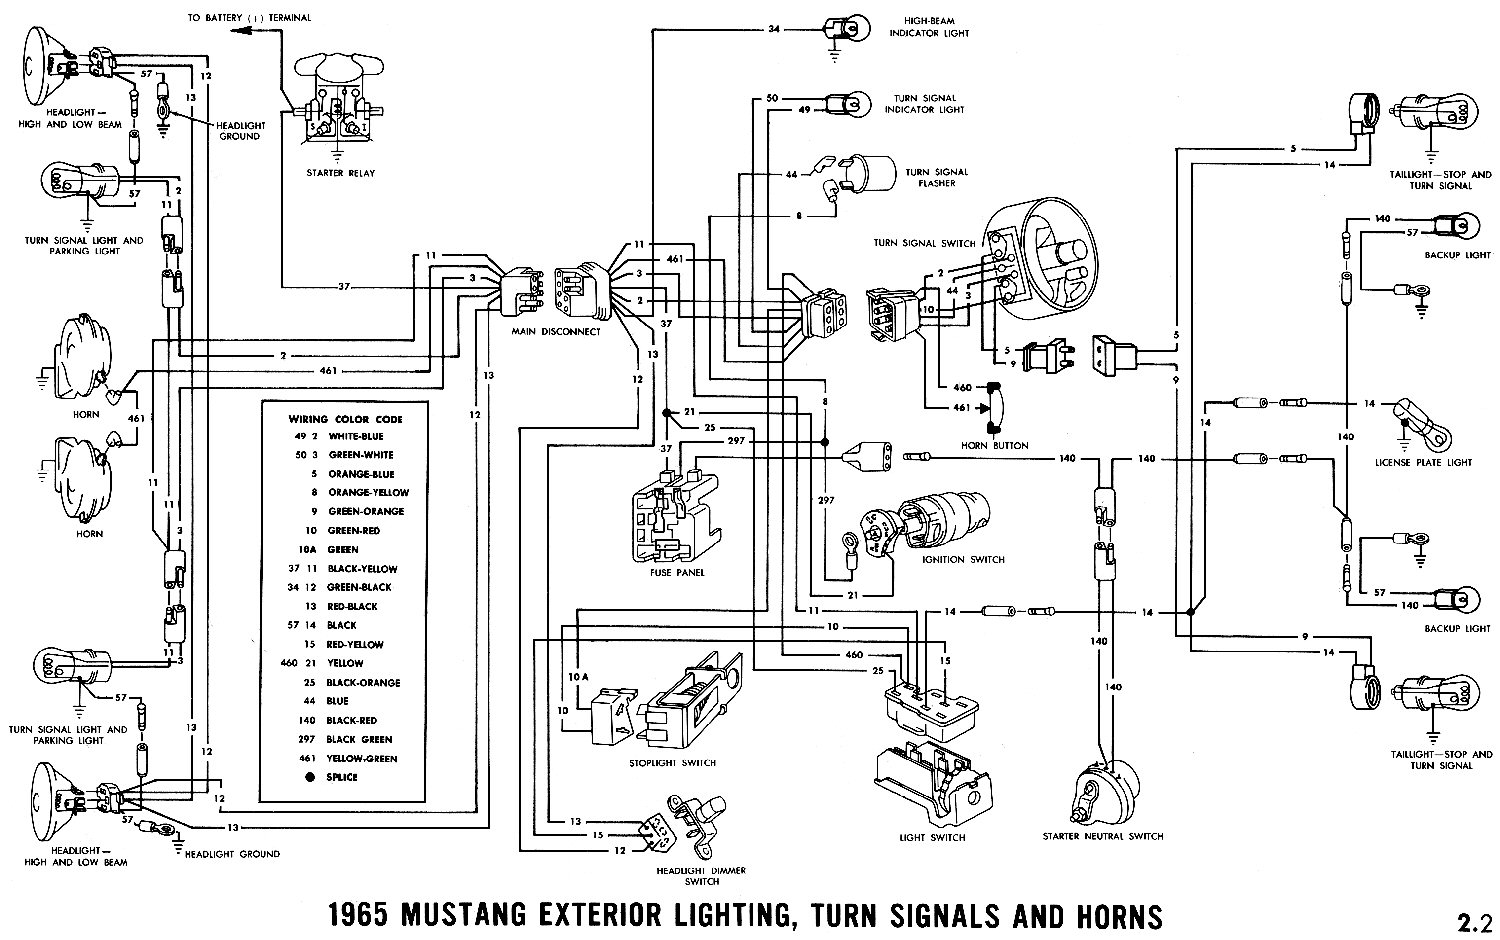 1966 mustang horn wiring diagram - wiring diagram export sum-bitter -  sum-bitter.congressosifo2018.it  congressosifo2018.it